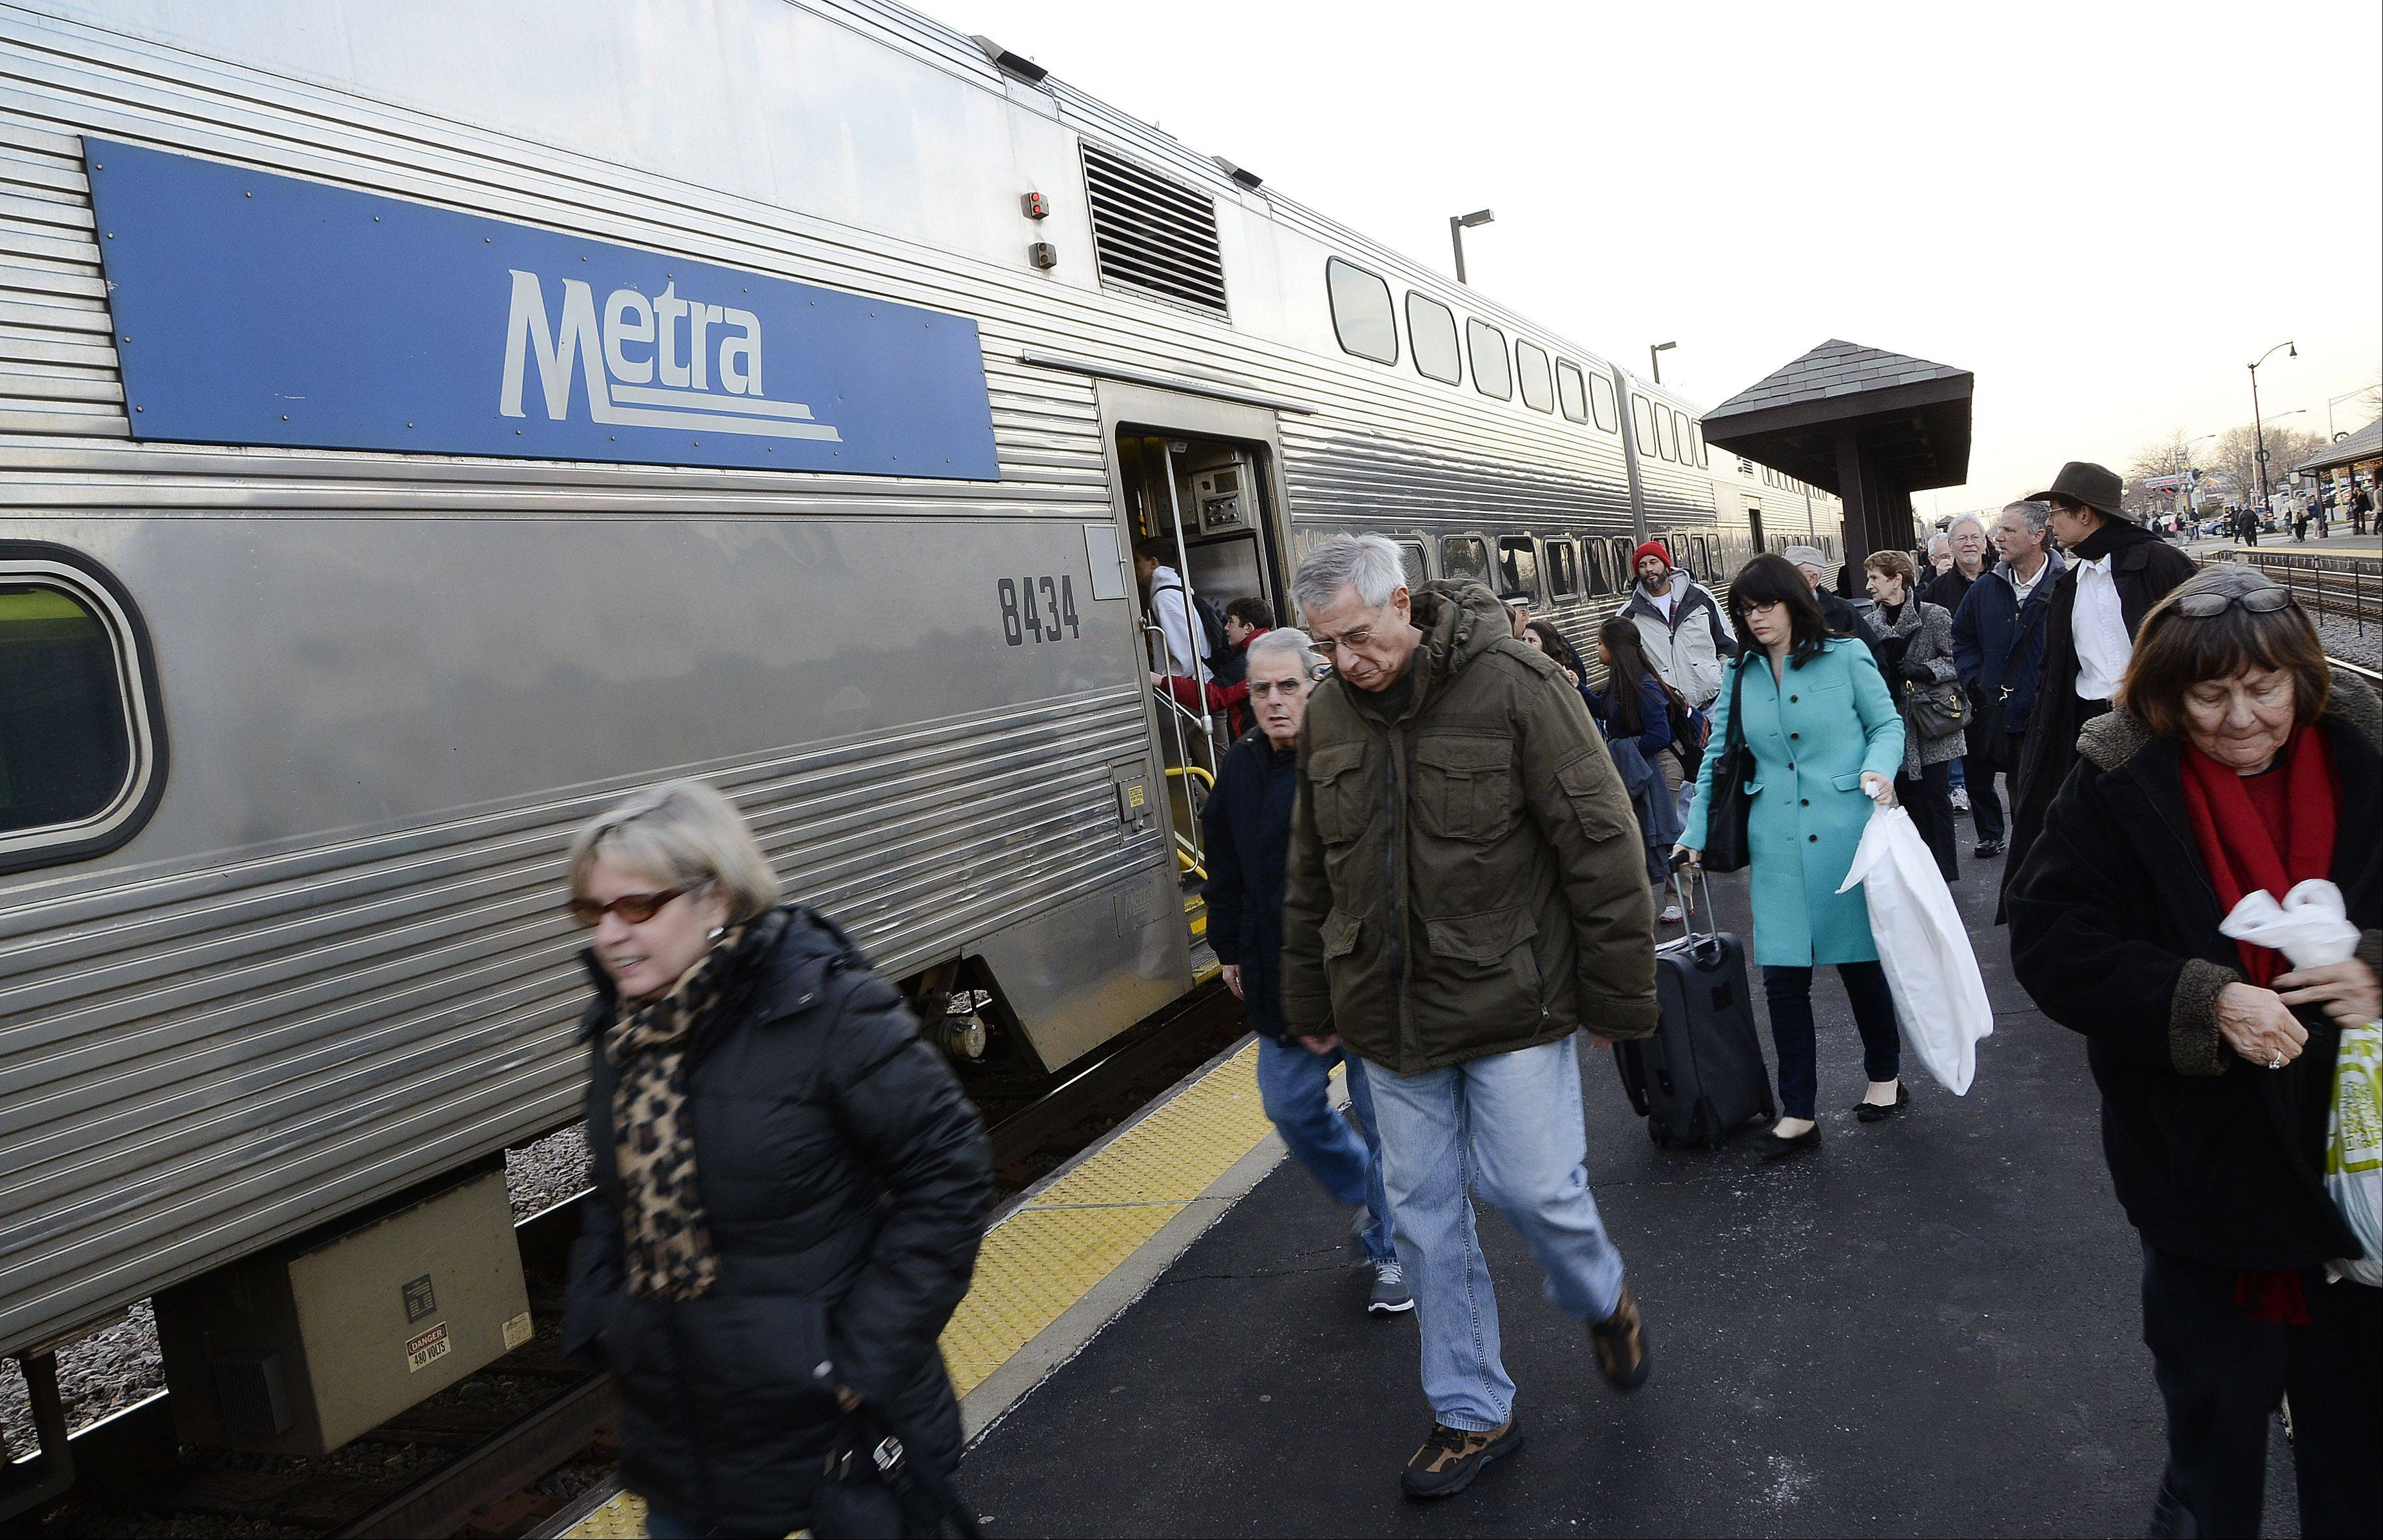 Metra commuters with 10-ride passes will pay more in February on the heels of another hike in February 2012.